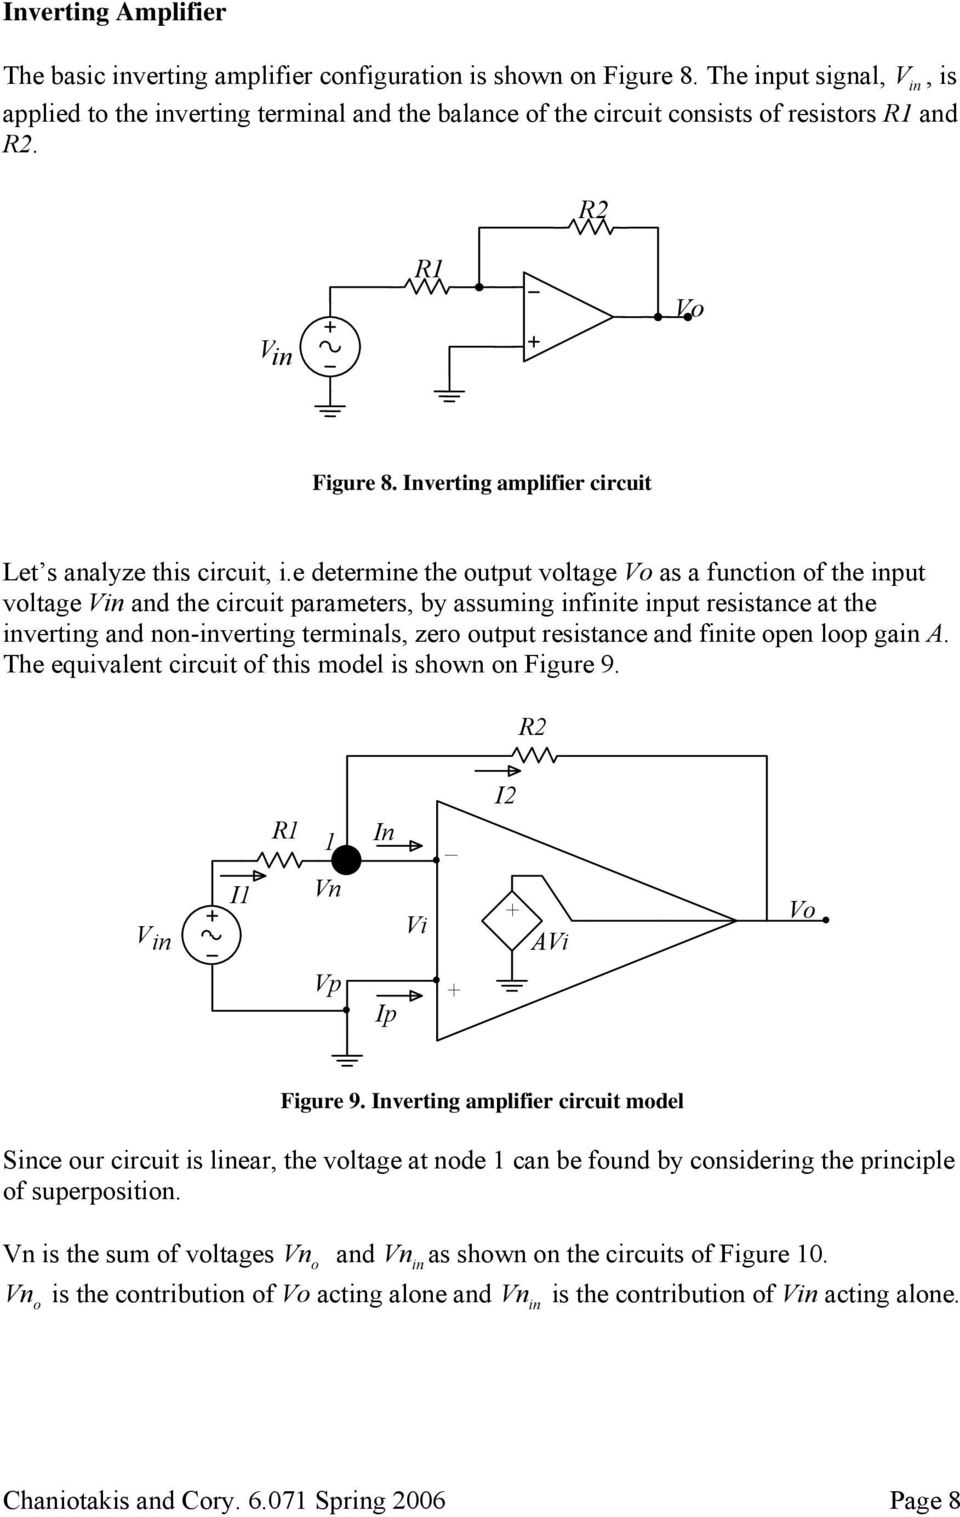 e determine the output voltage as a function of the input voltage Vin and the circuit parameters, by assuming infinite input resistance at the inverting and non-inverting terminals, zero output